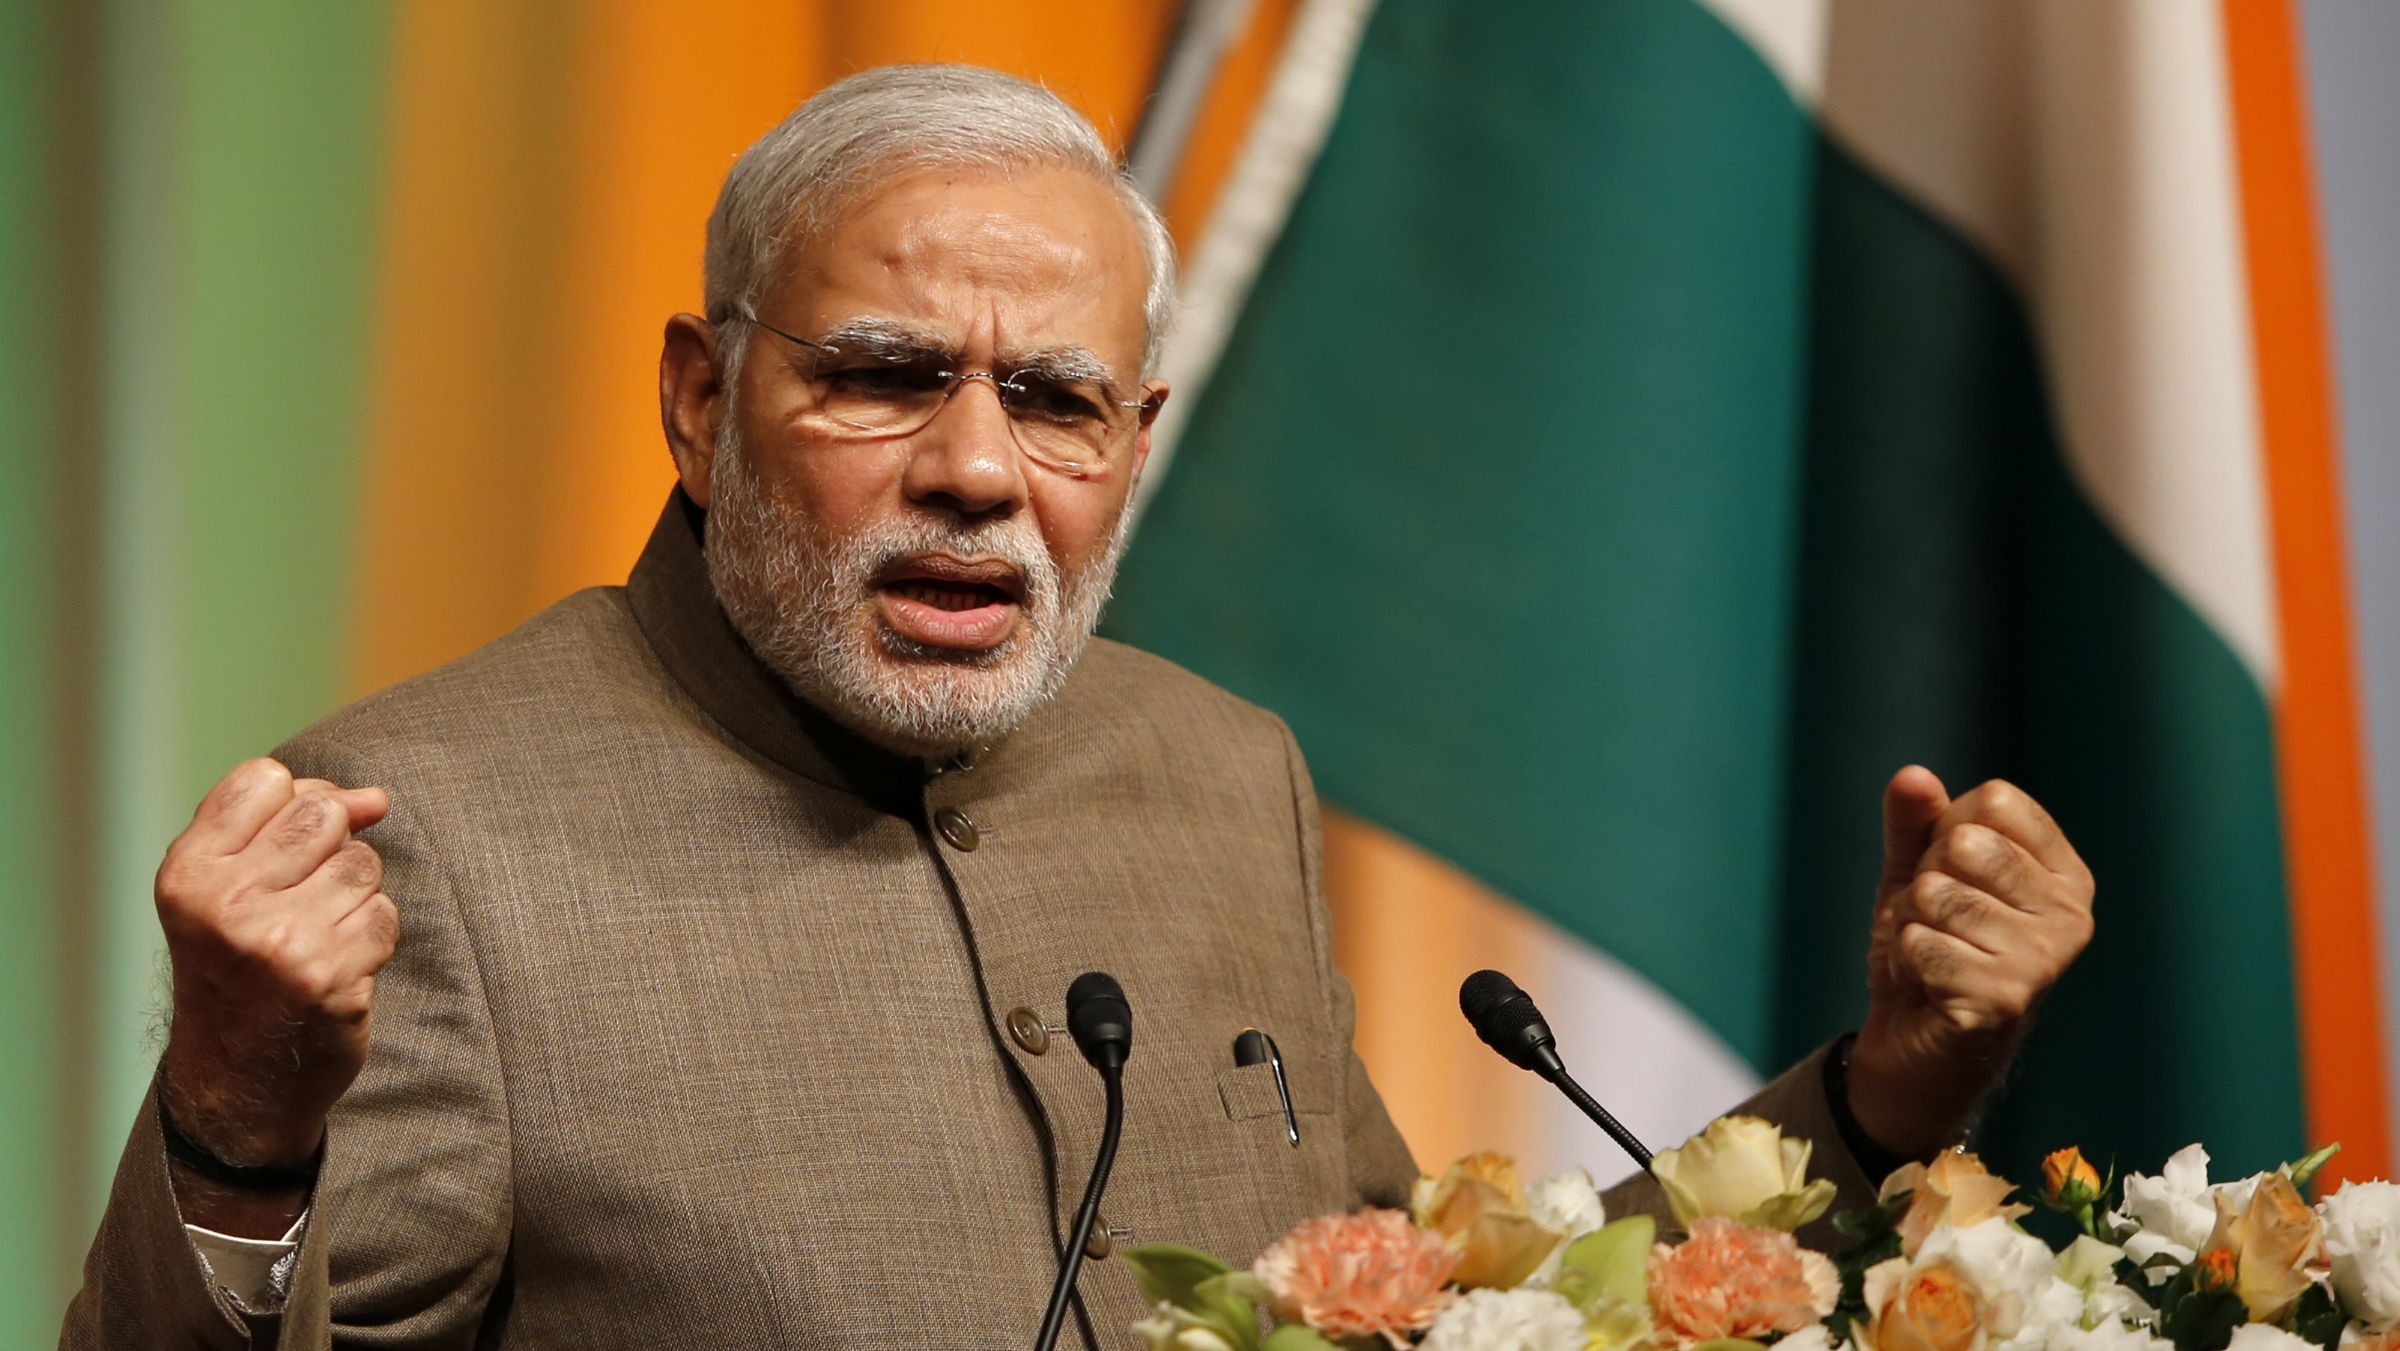 India's Prime Minister Narendra Modi gives a speech during his lecture meeting hosted by Nikkei Inc. and Japan External Trade Organization (JETRO) in Tokyo September 2, 2014. Modi, on his first major foreign visit since a landslide election win in May, arrived on Saturday for a five-day trip aimed at capitalising on his personal affinity with Japan's Prime Minister Shinzo Abe to bolster security and business ties. REUTERS/Toru Hanai